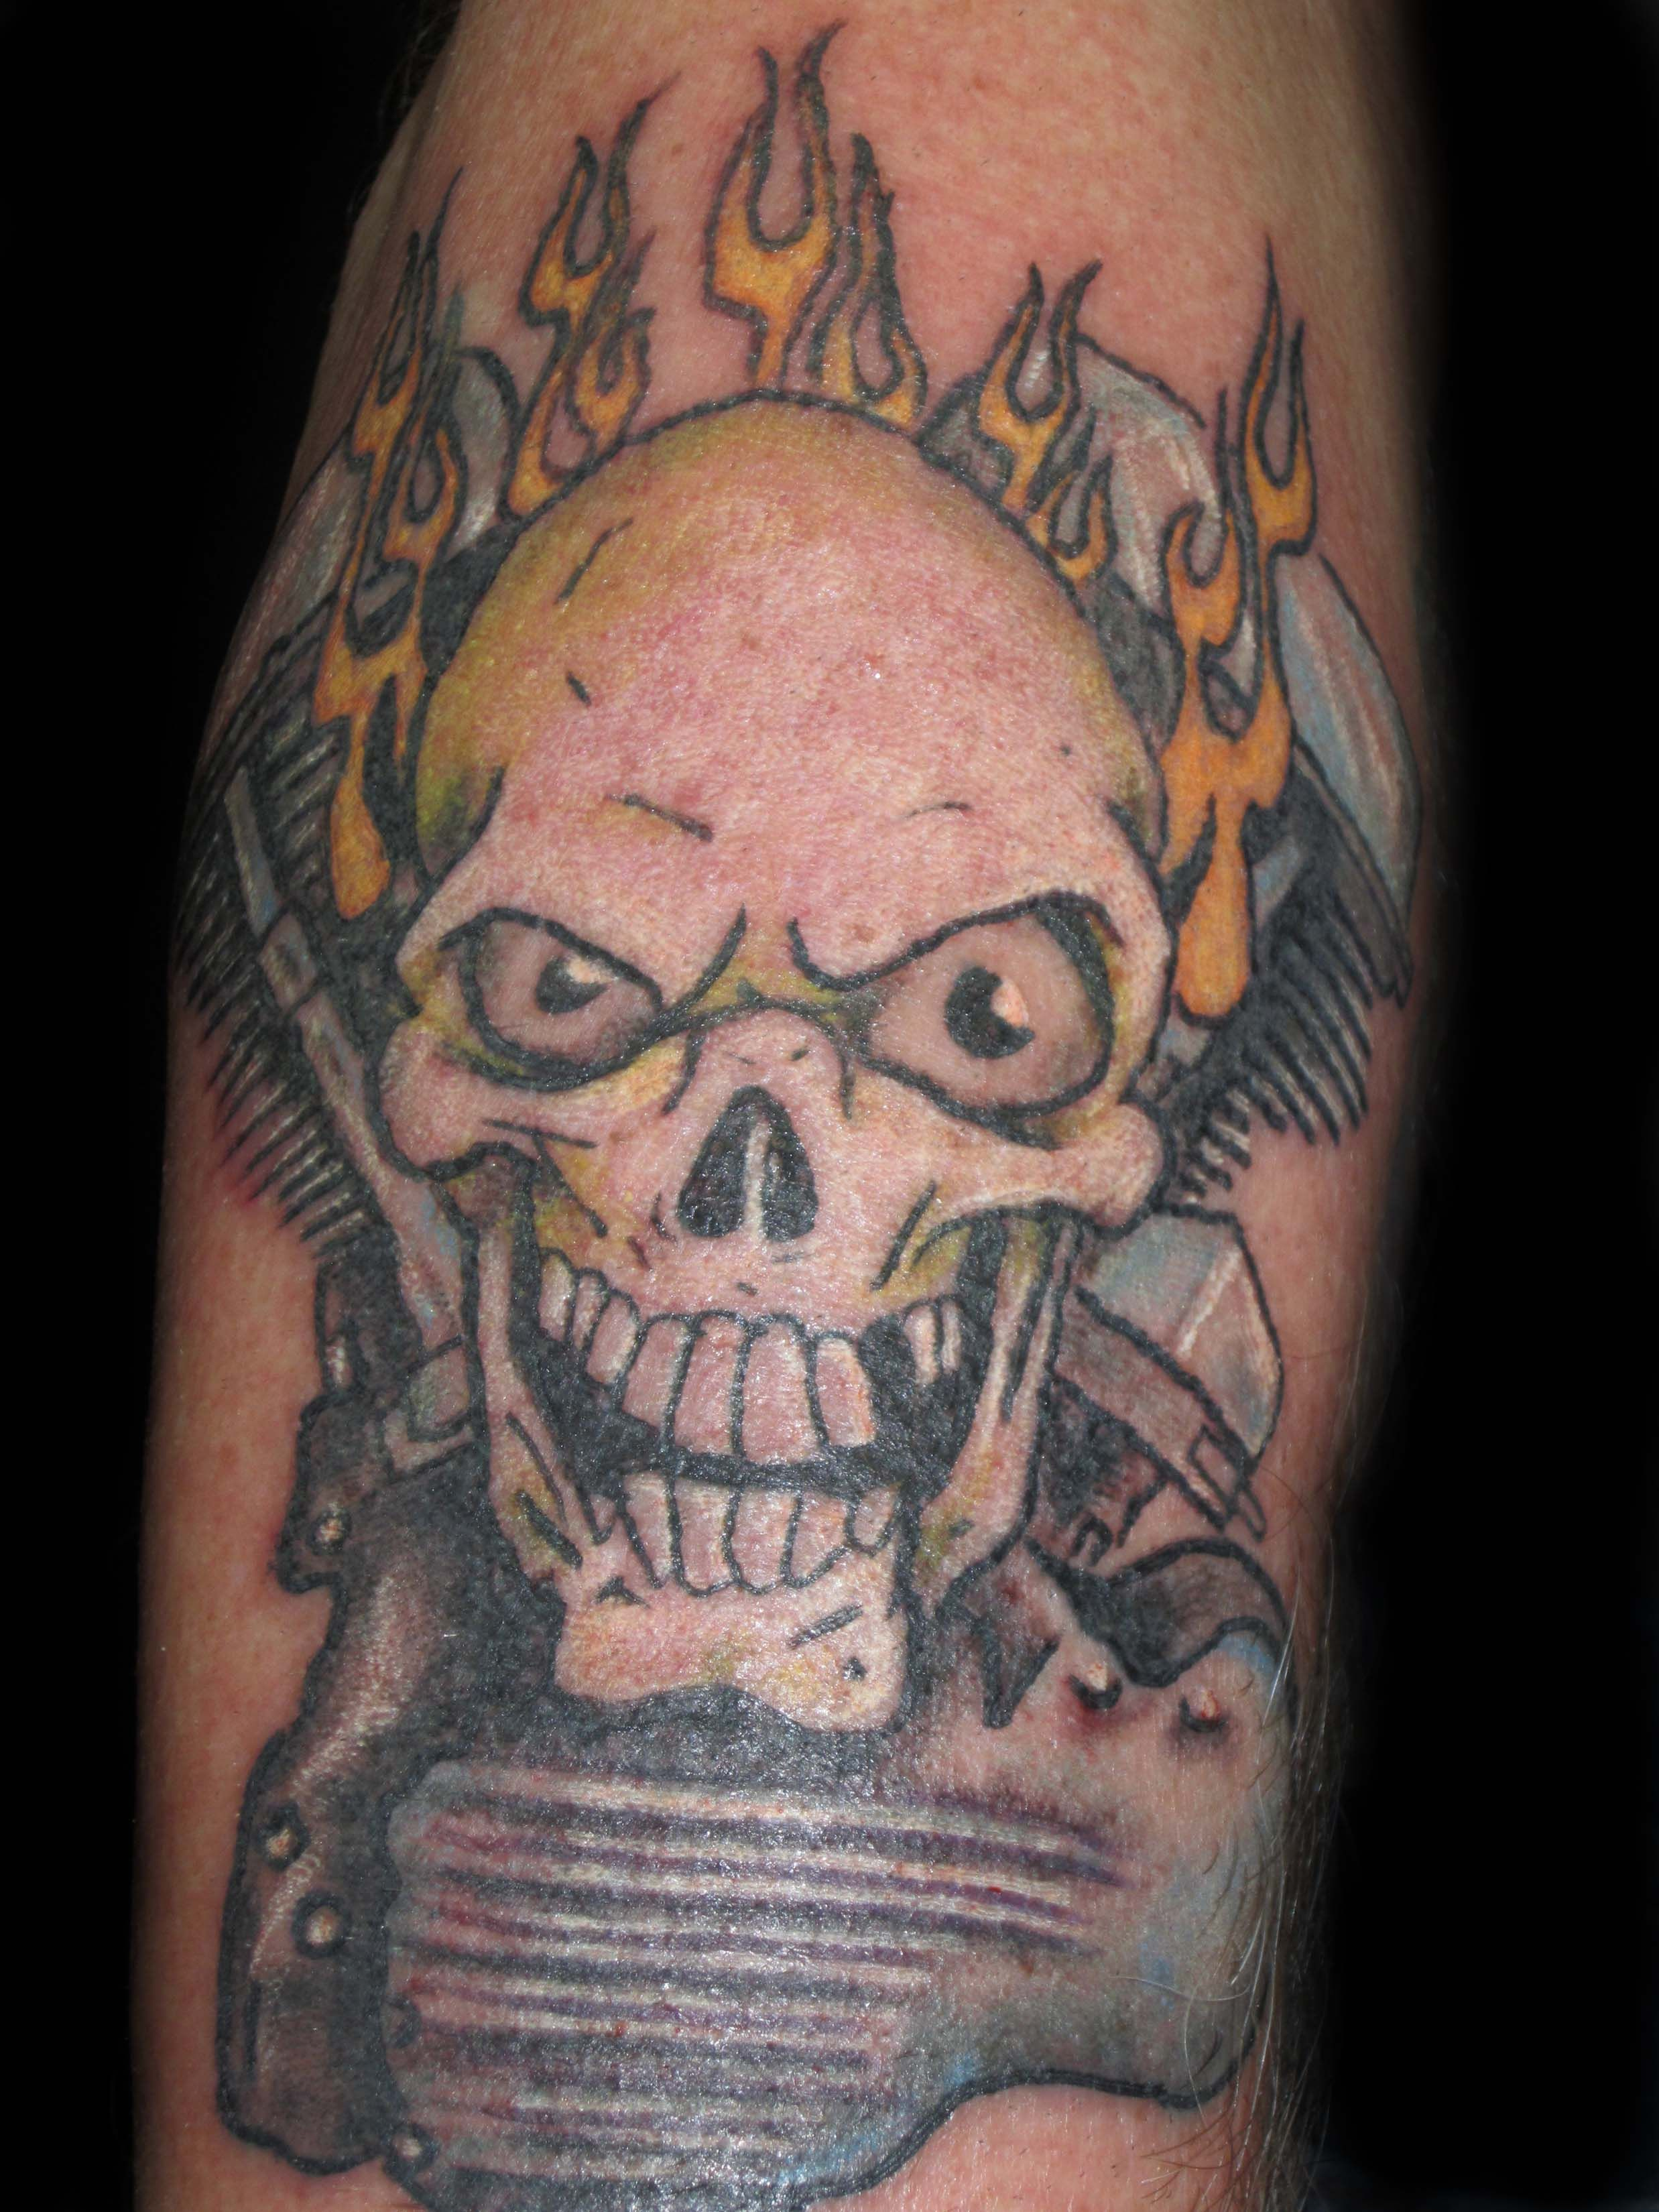 Skull tattoo, panhead tattoo, motorcycle tattoo, motor ... - photo#38